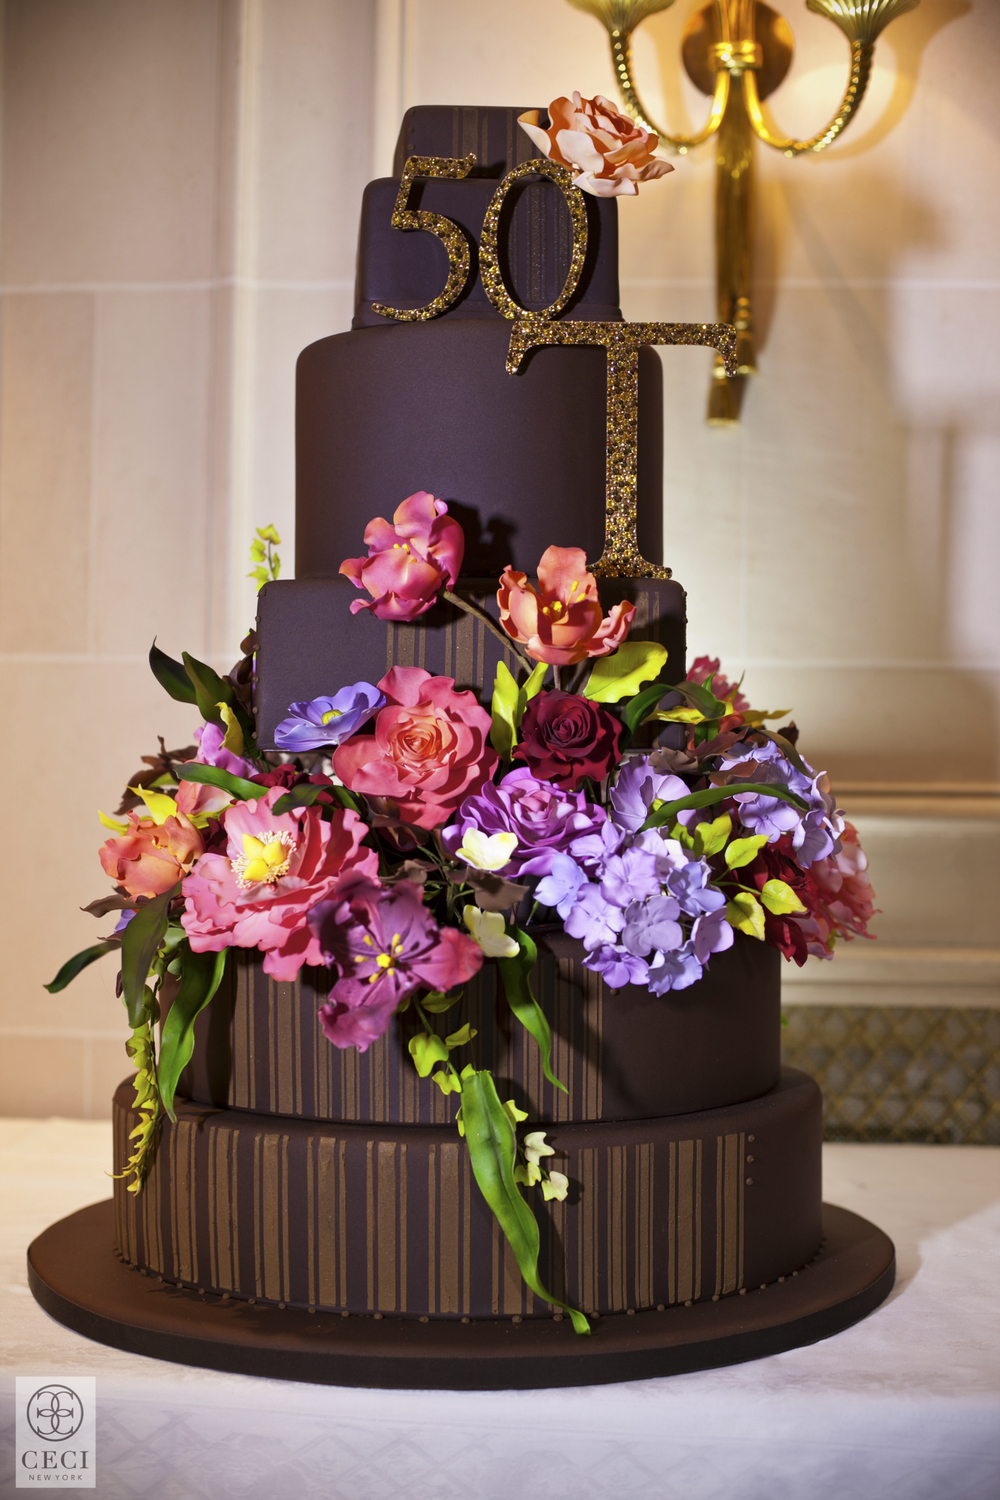 ceci_new_york_lucas_somoza_purple_regal_wediding_birthday_commitment_ceremony_gold-35.jpg